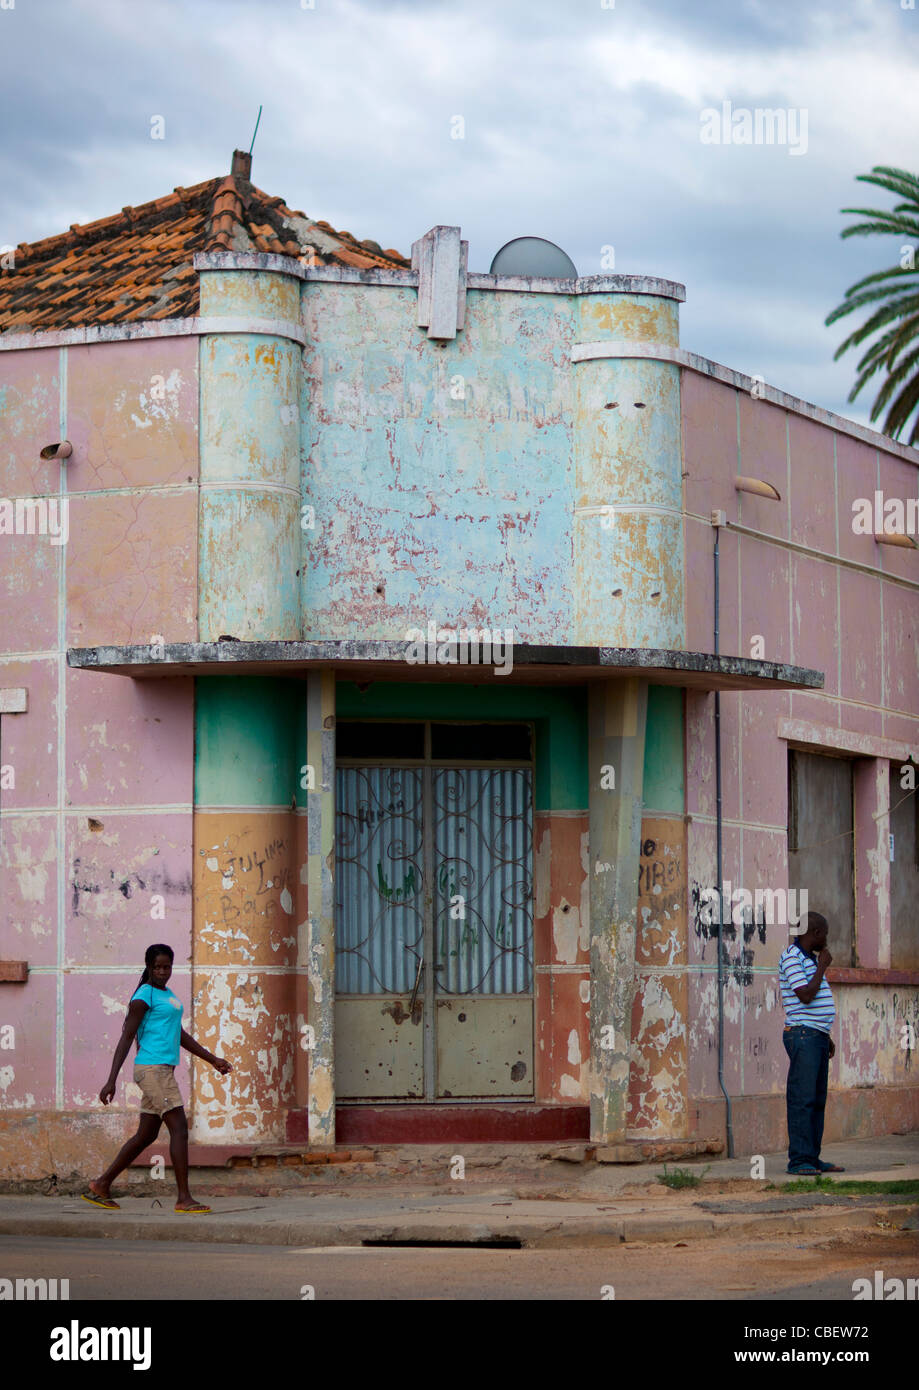 Old Dilapidated Building In Chibia, Angola - Stock Image